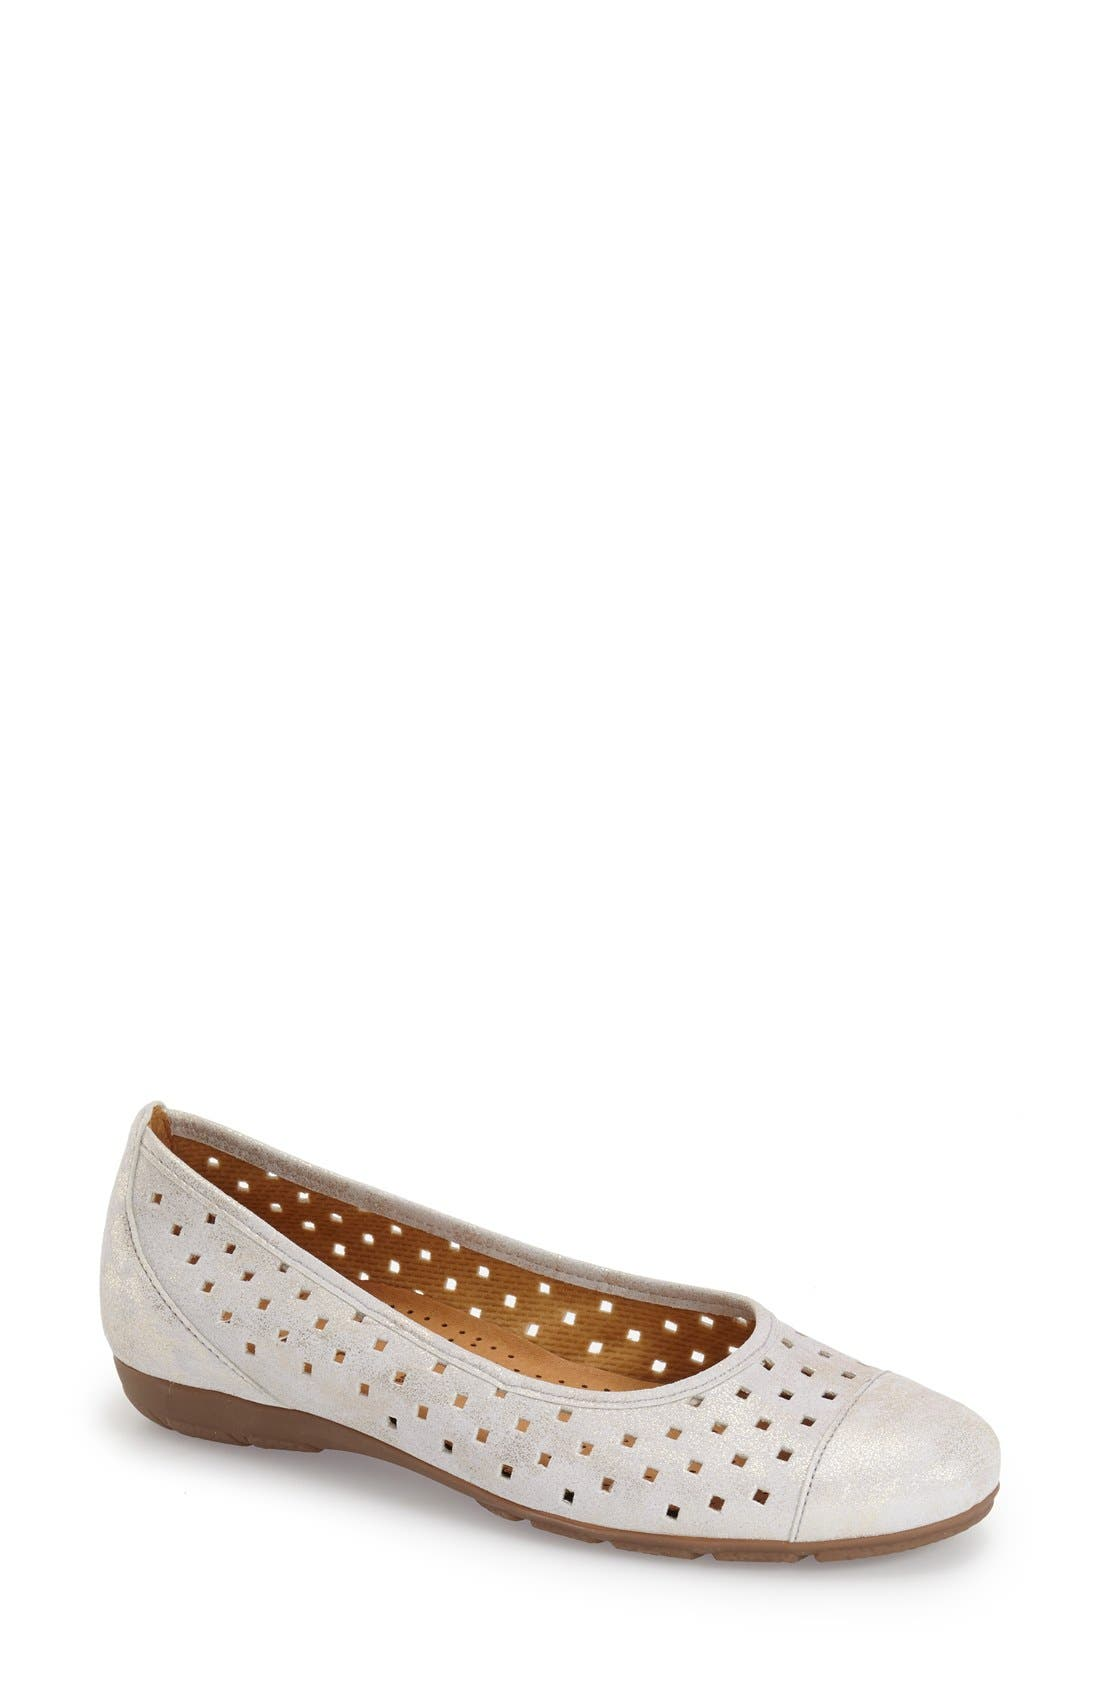 Alternate Image 1 Selected - Gabor Perforated Ballet Flat